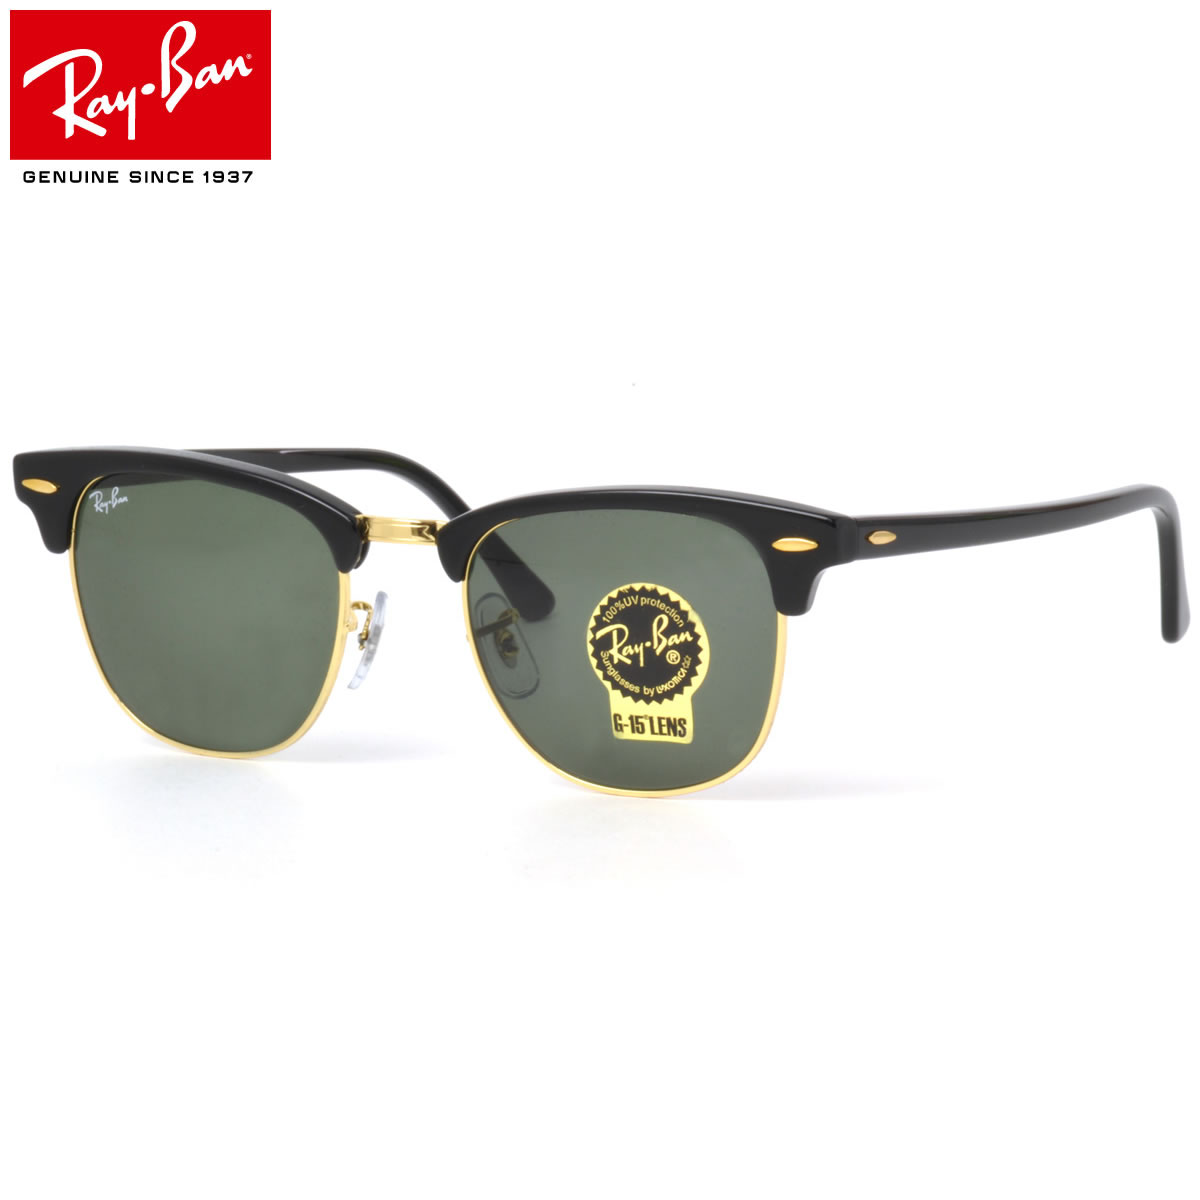 ray ban w0365 04jd  ray ban black clubmaster sunglasses rb3016 w0365